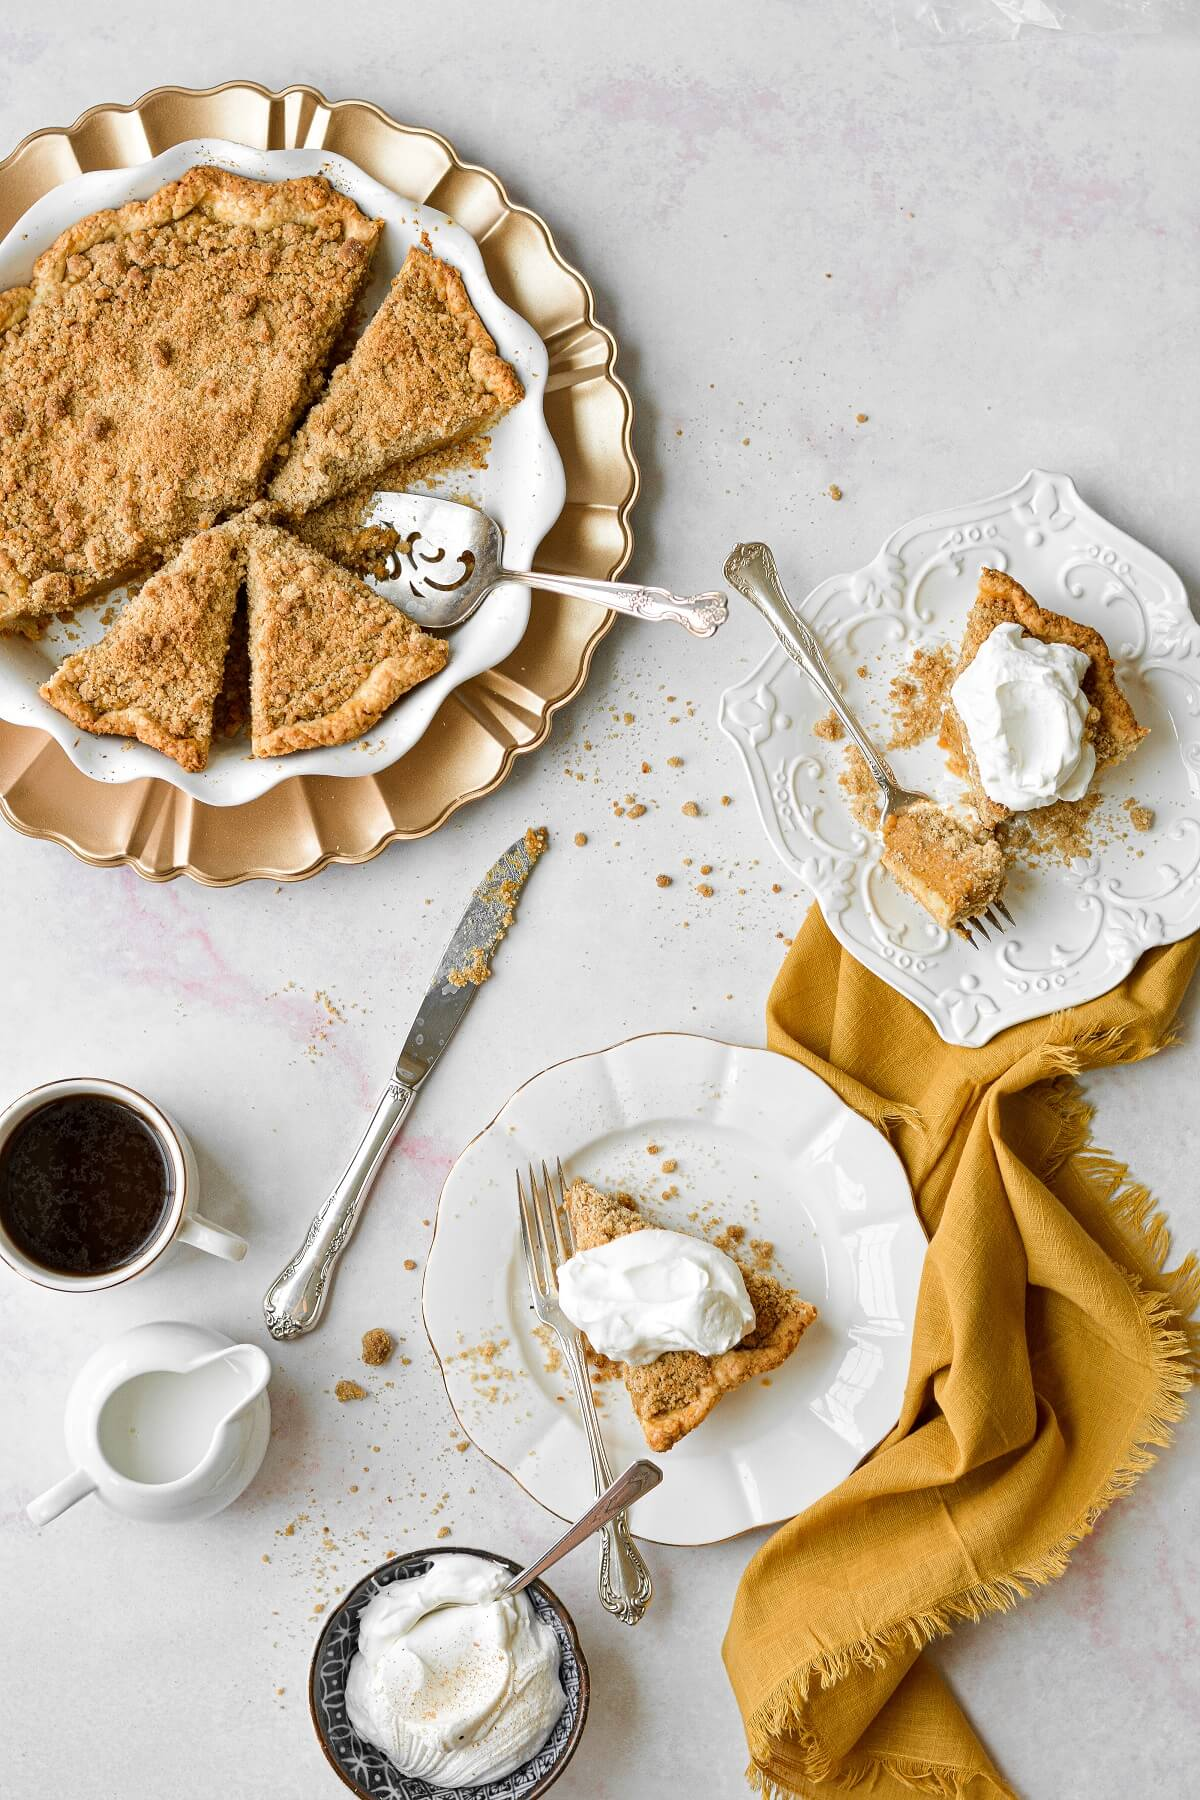 An arrangement of a pumpkin streusel pie, with several slices cut on white plates, topped with whipped cream, and surrounded by crumbs and a yellow linen napkin.